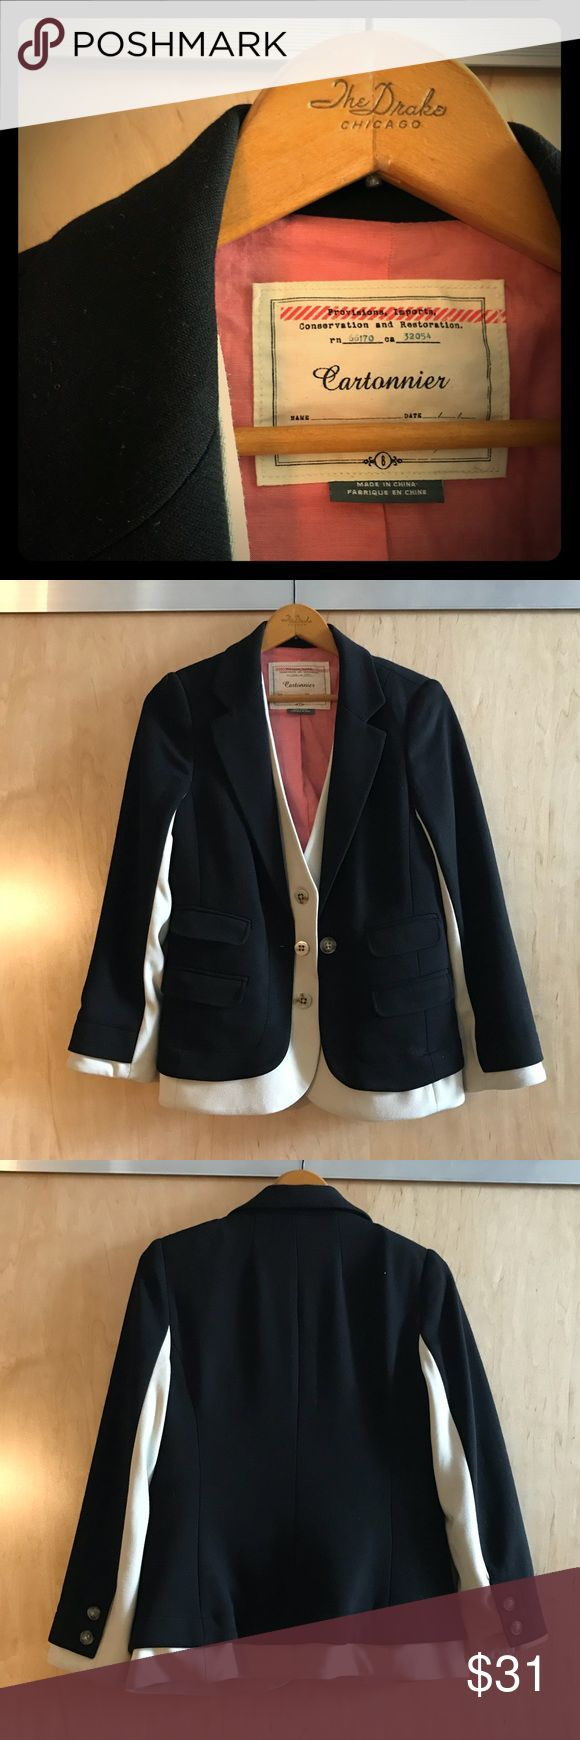 Layered Black and White Blazer - Look of Two Coats without the Bulk - Blue Striped Interior Piping - Silky Lined Sleeves for Comfort - Pink Cotton Lined for Temperature Anthropologie Jackets & Coats Blazers